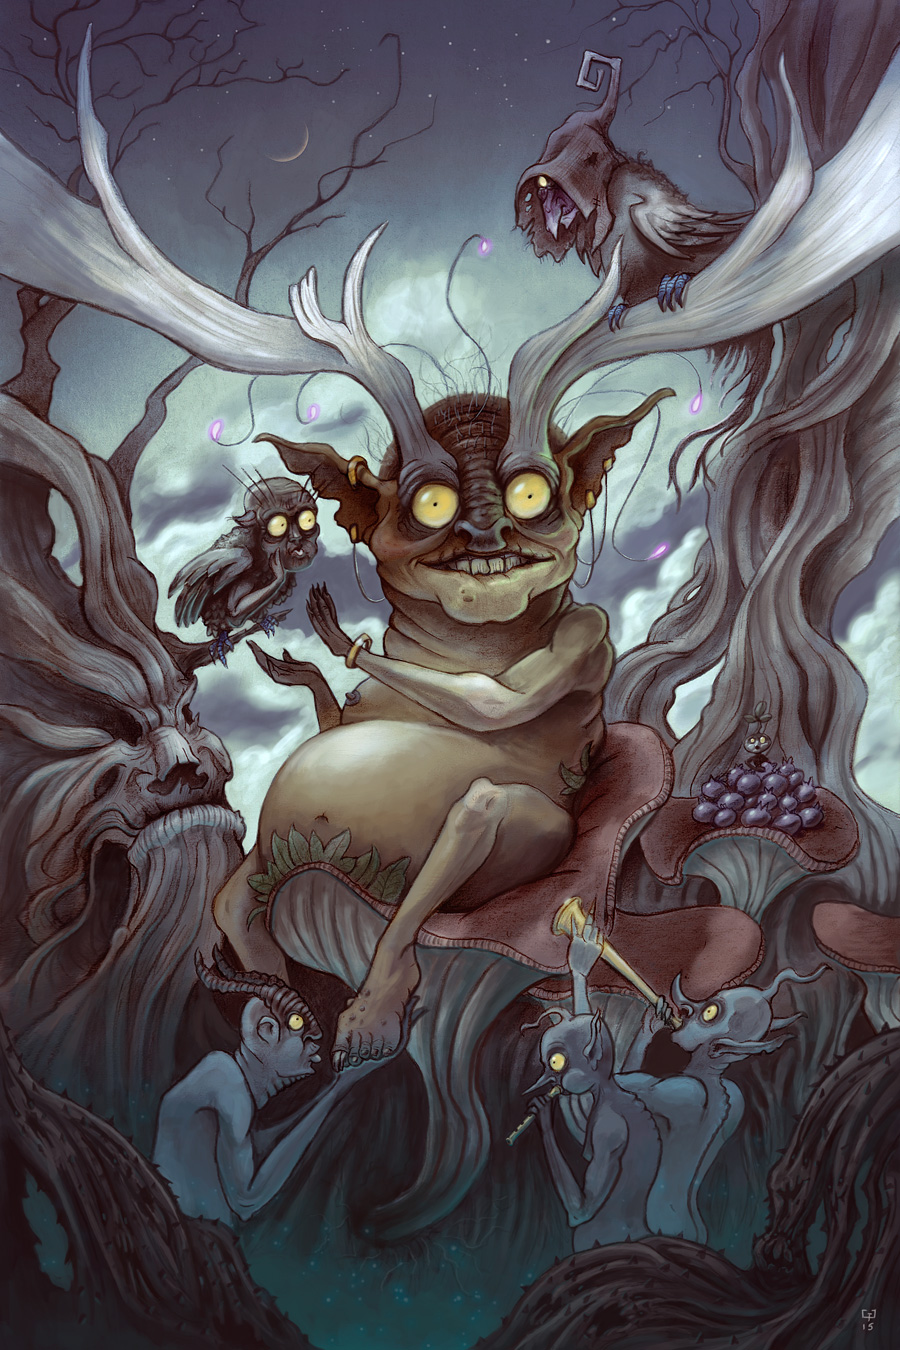 The Faerie King - By Gavin Gray Valentine